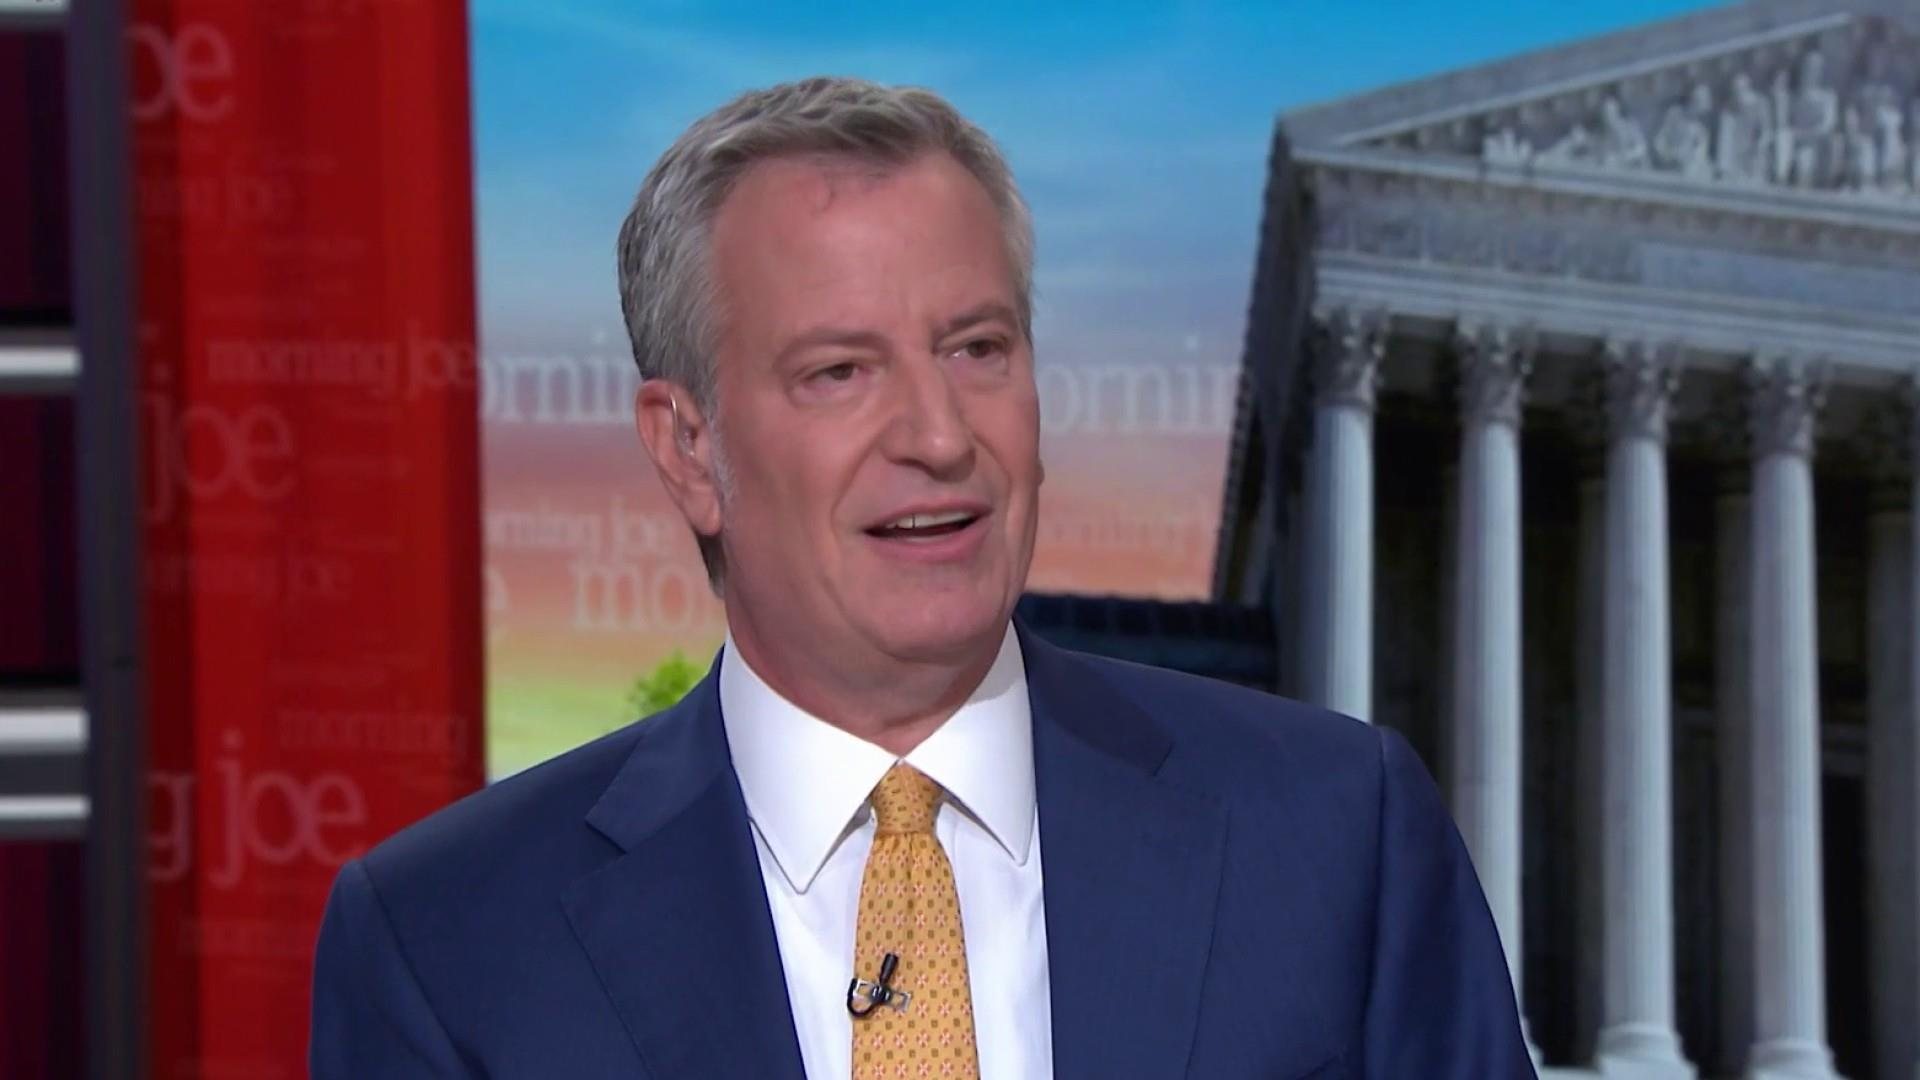 De Blasio: Trump is making America hate again